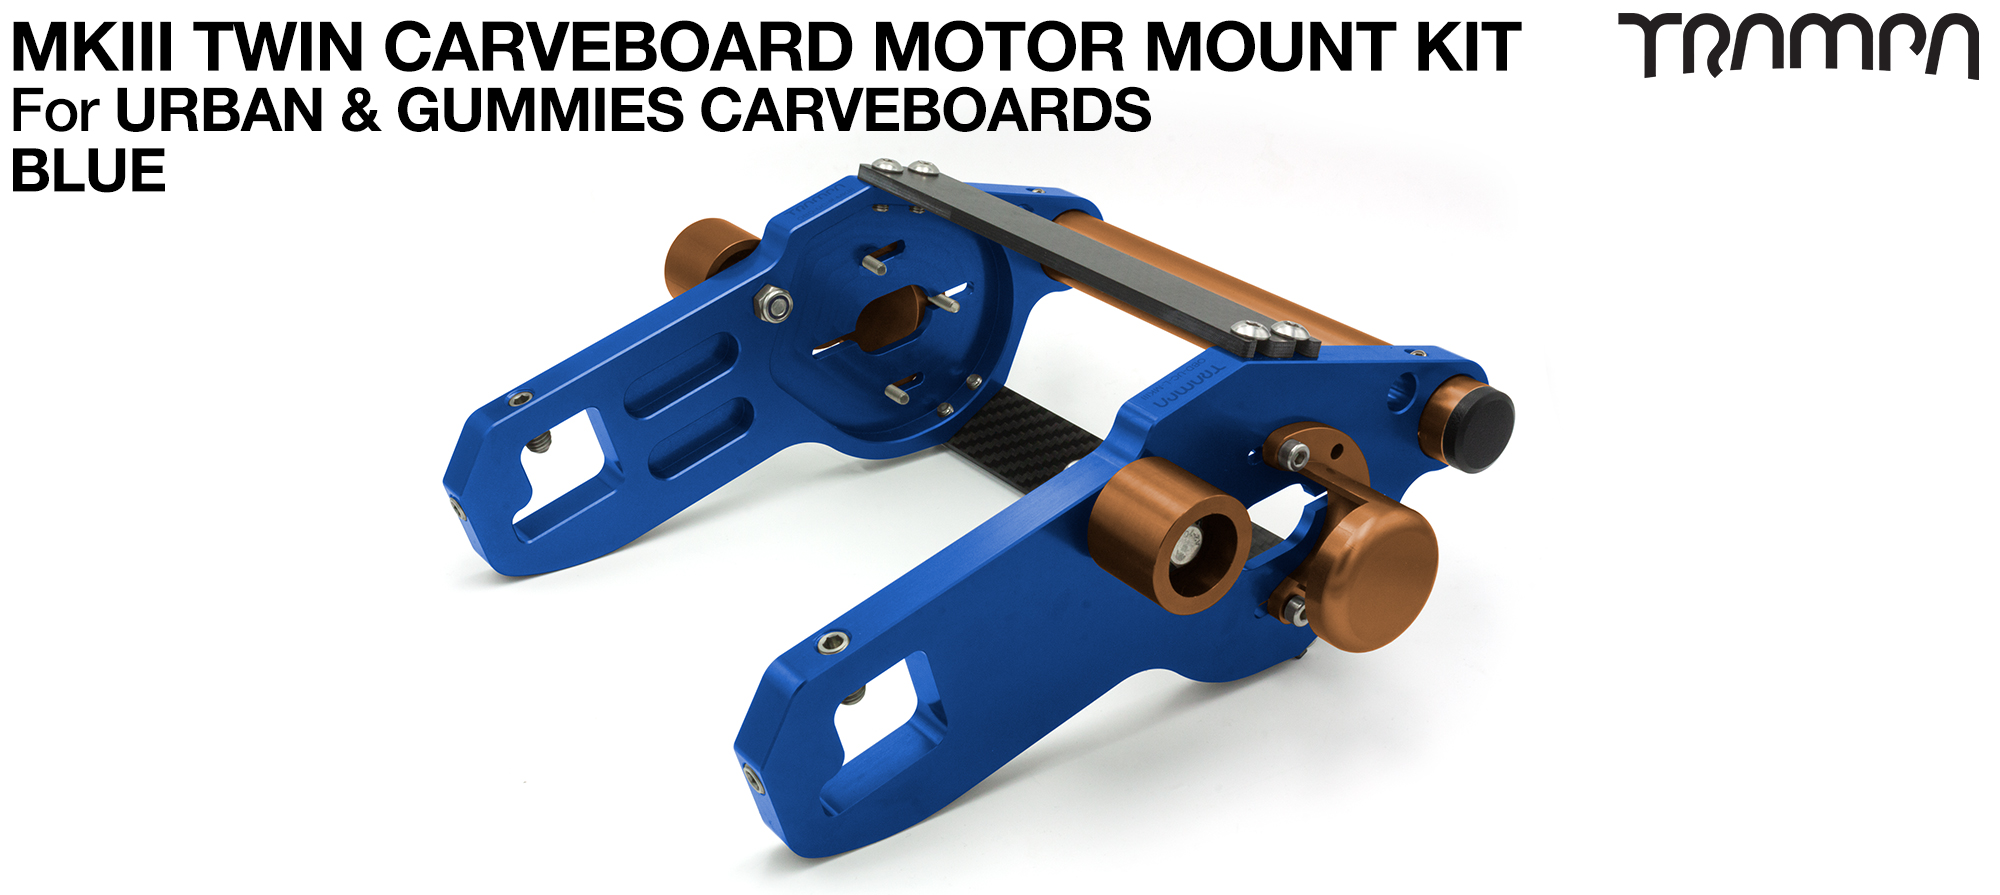 MkIII CARVE BOARD Motor Mount Kit - TWIN BLUE